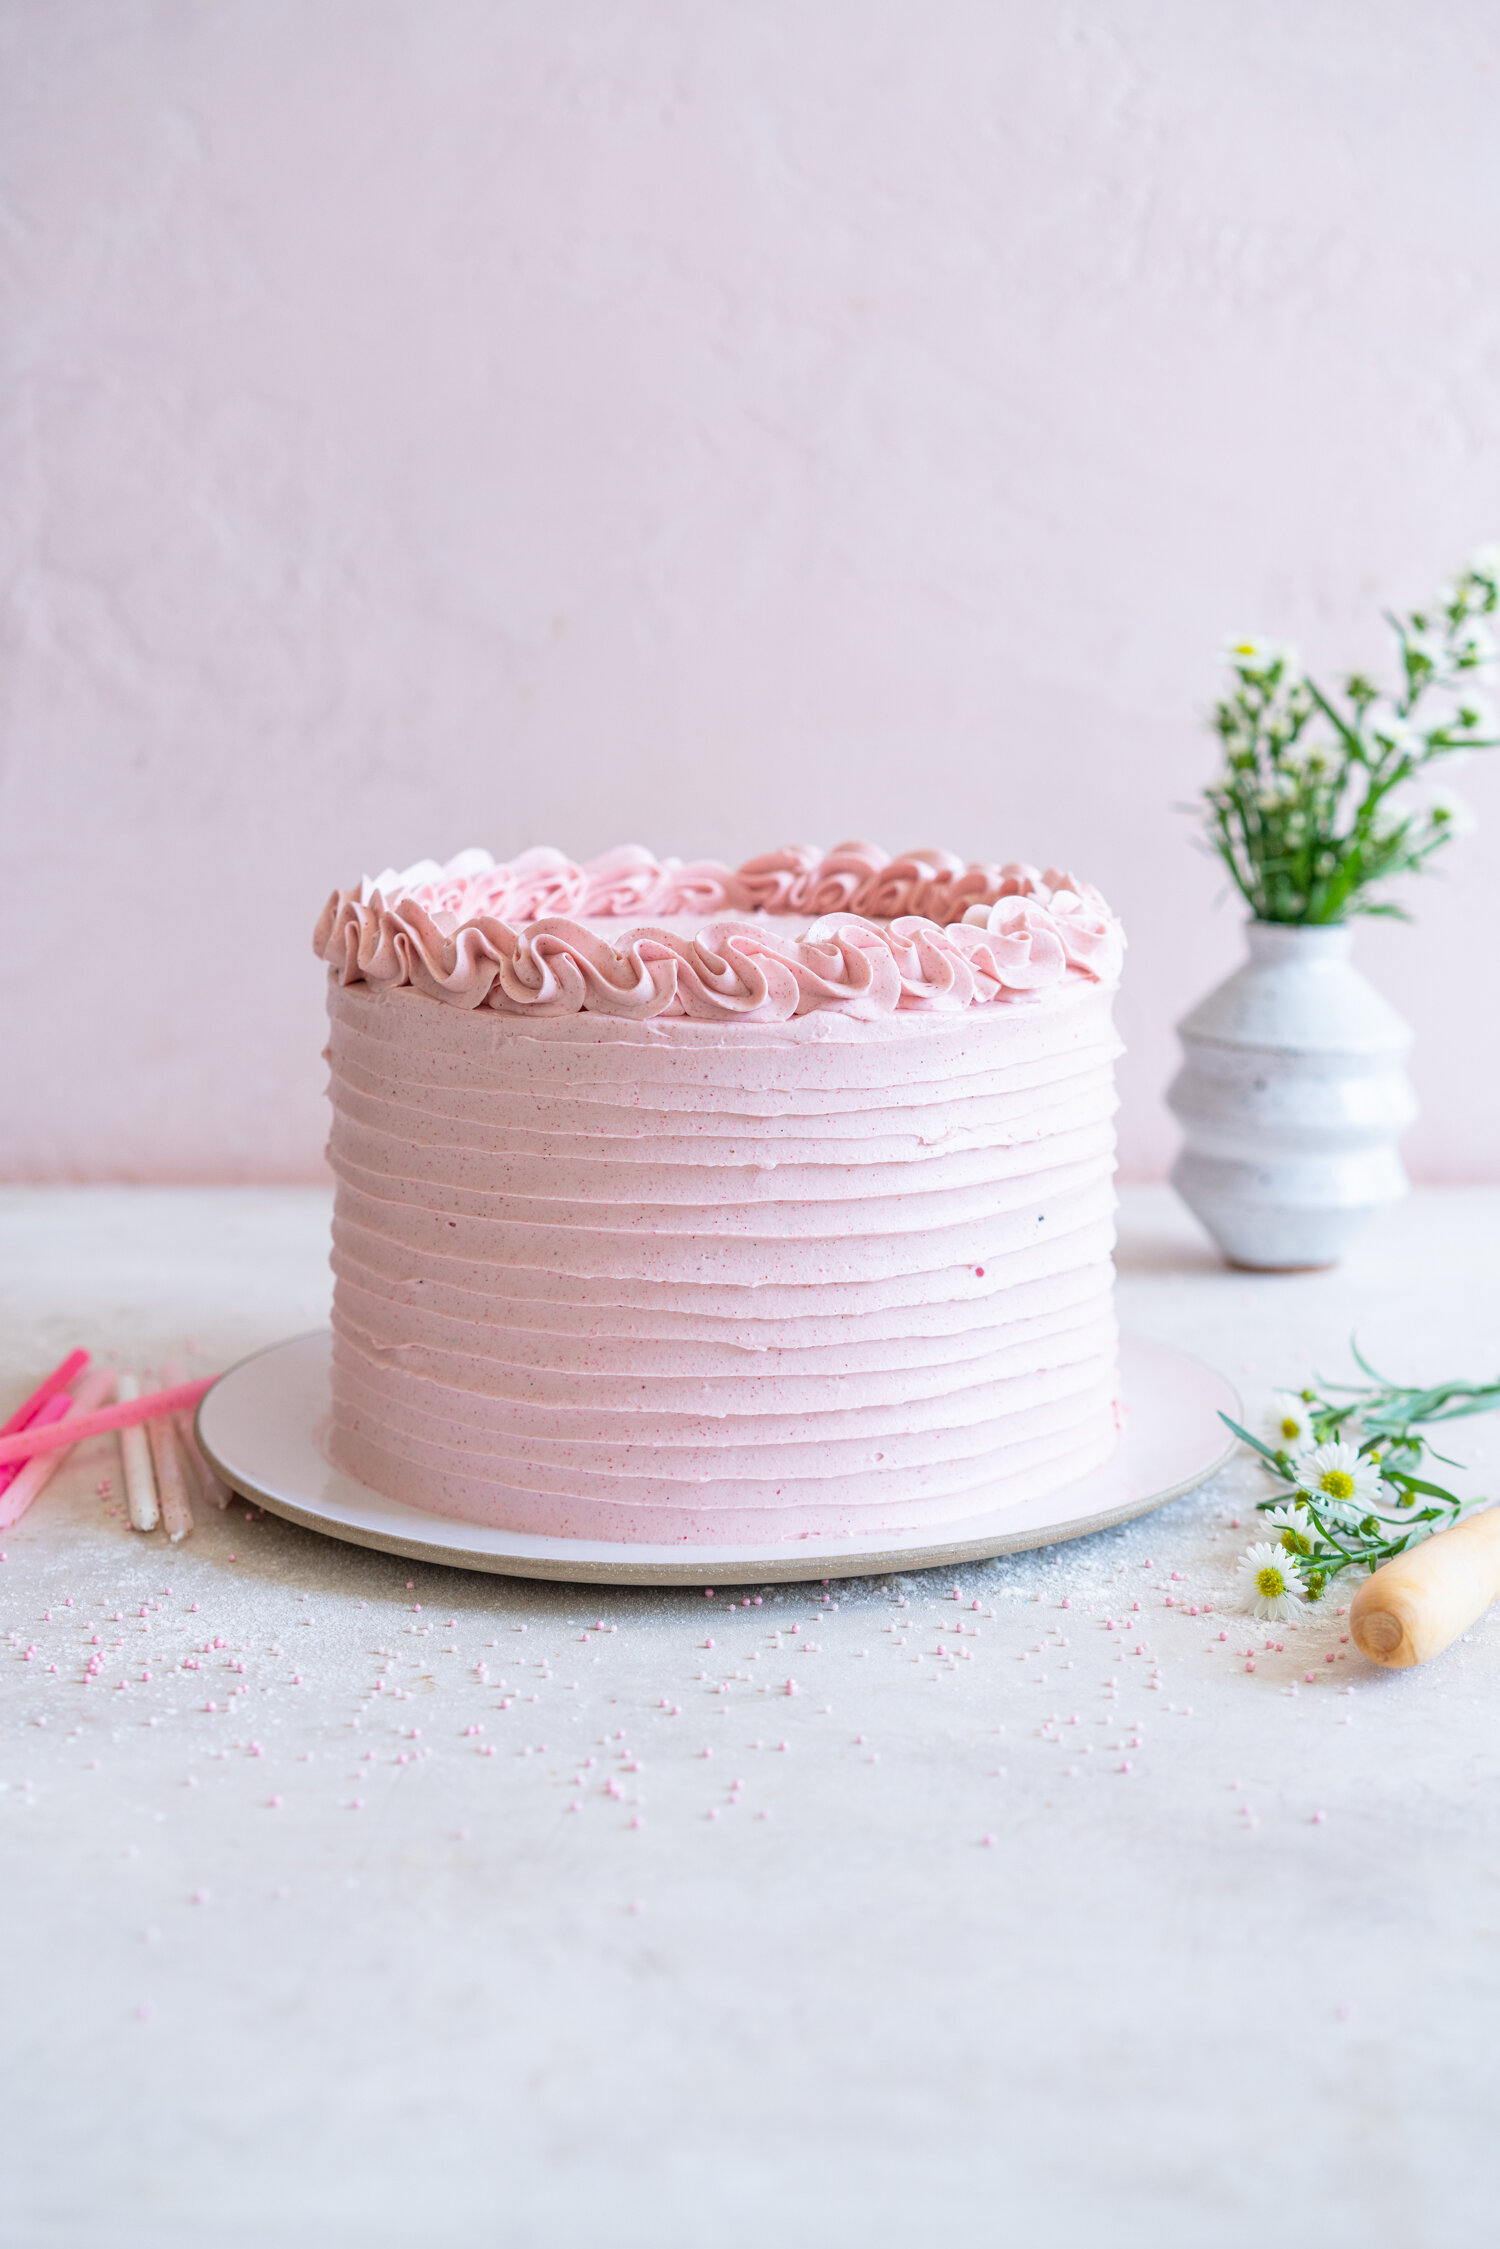 Chocolate Layer Cake with Jam Filling and Strawberry Swiss Meringue Buttercream from Amanda Faber's book, Cake Portfolio. Layers of Rich chocolate cake are layered up with mixed berry jam, and then the cake is finished with a strawberry swiss meringue buttercream made with freeze dried strawberry powder. This is the perfect birthday or celebration cake for anyone who loves strawberry or chocolate. #strawberryswissmeringuebuttercream #chocolatelayercake #layercake